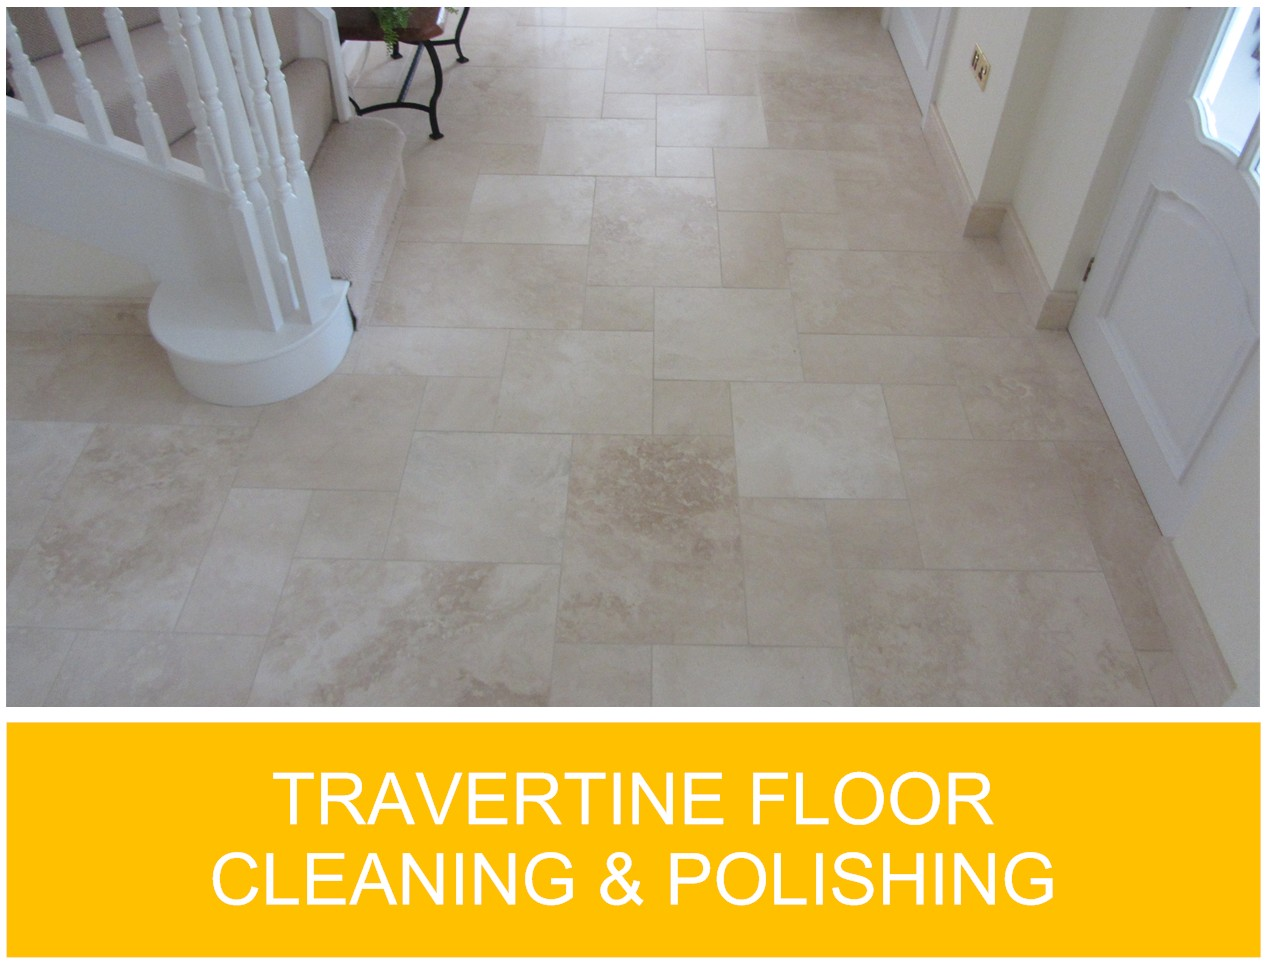 Travertine Floor Cleaning And Polishing